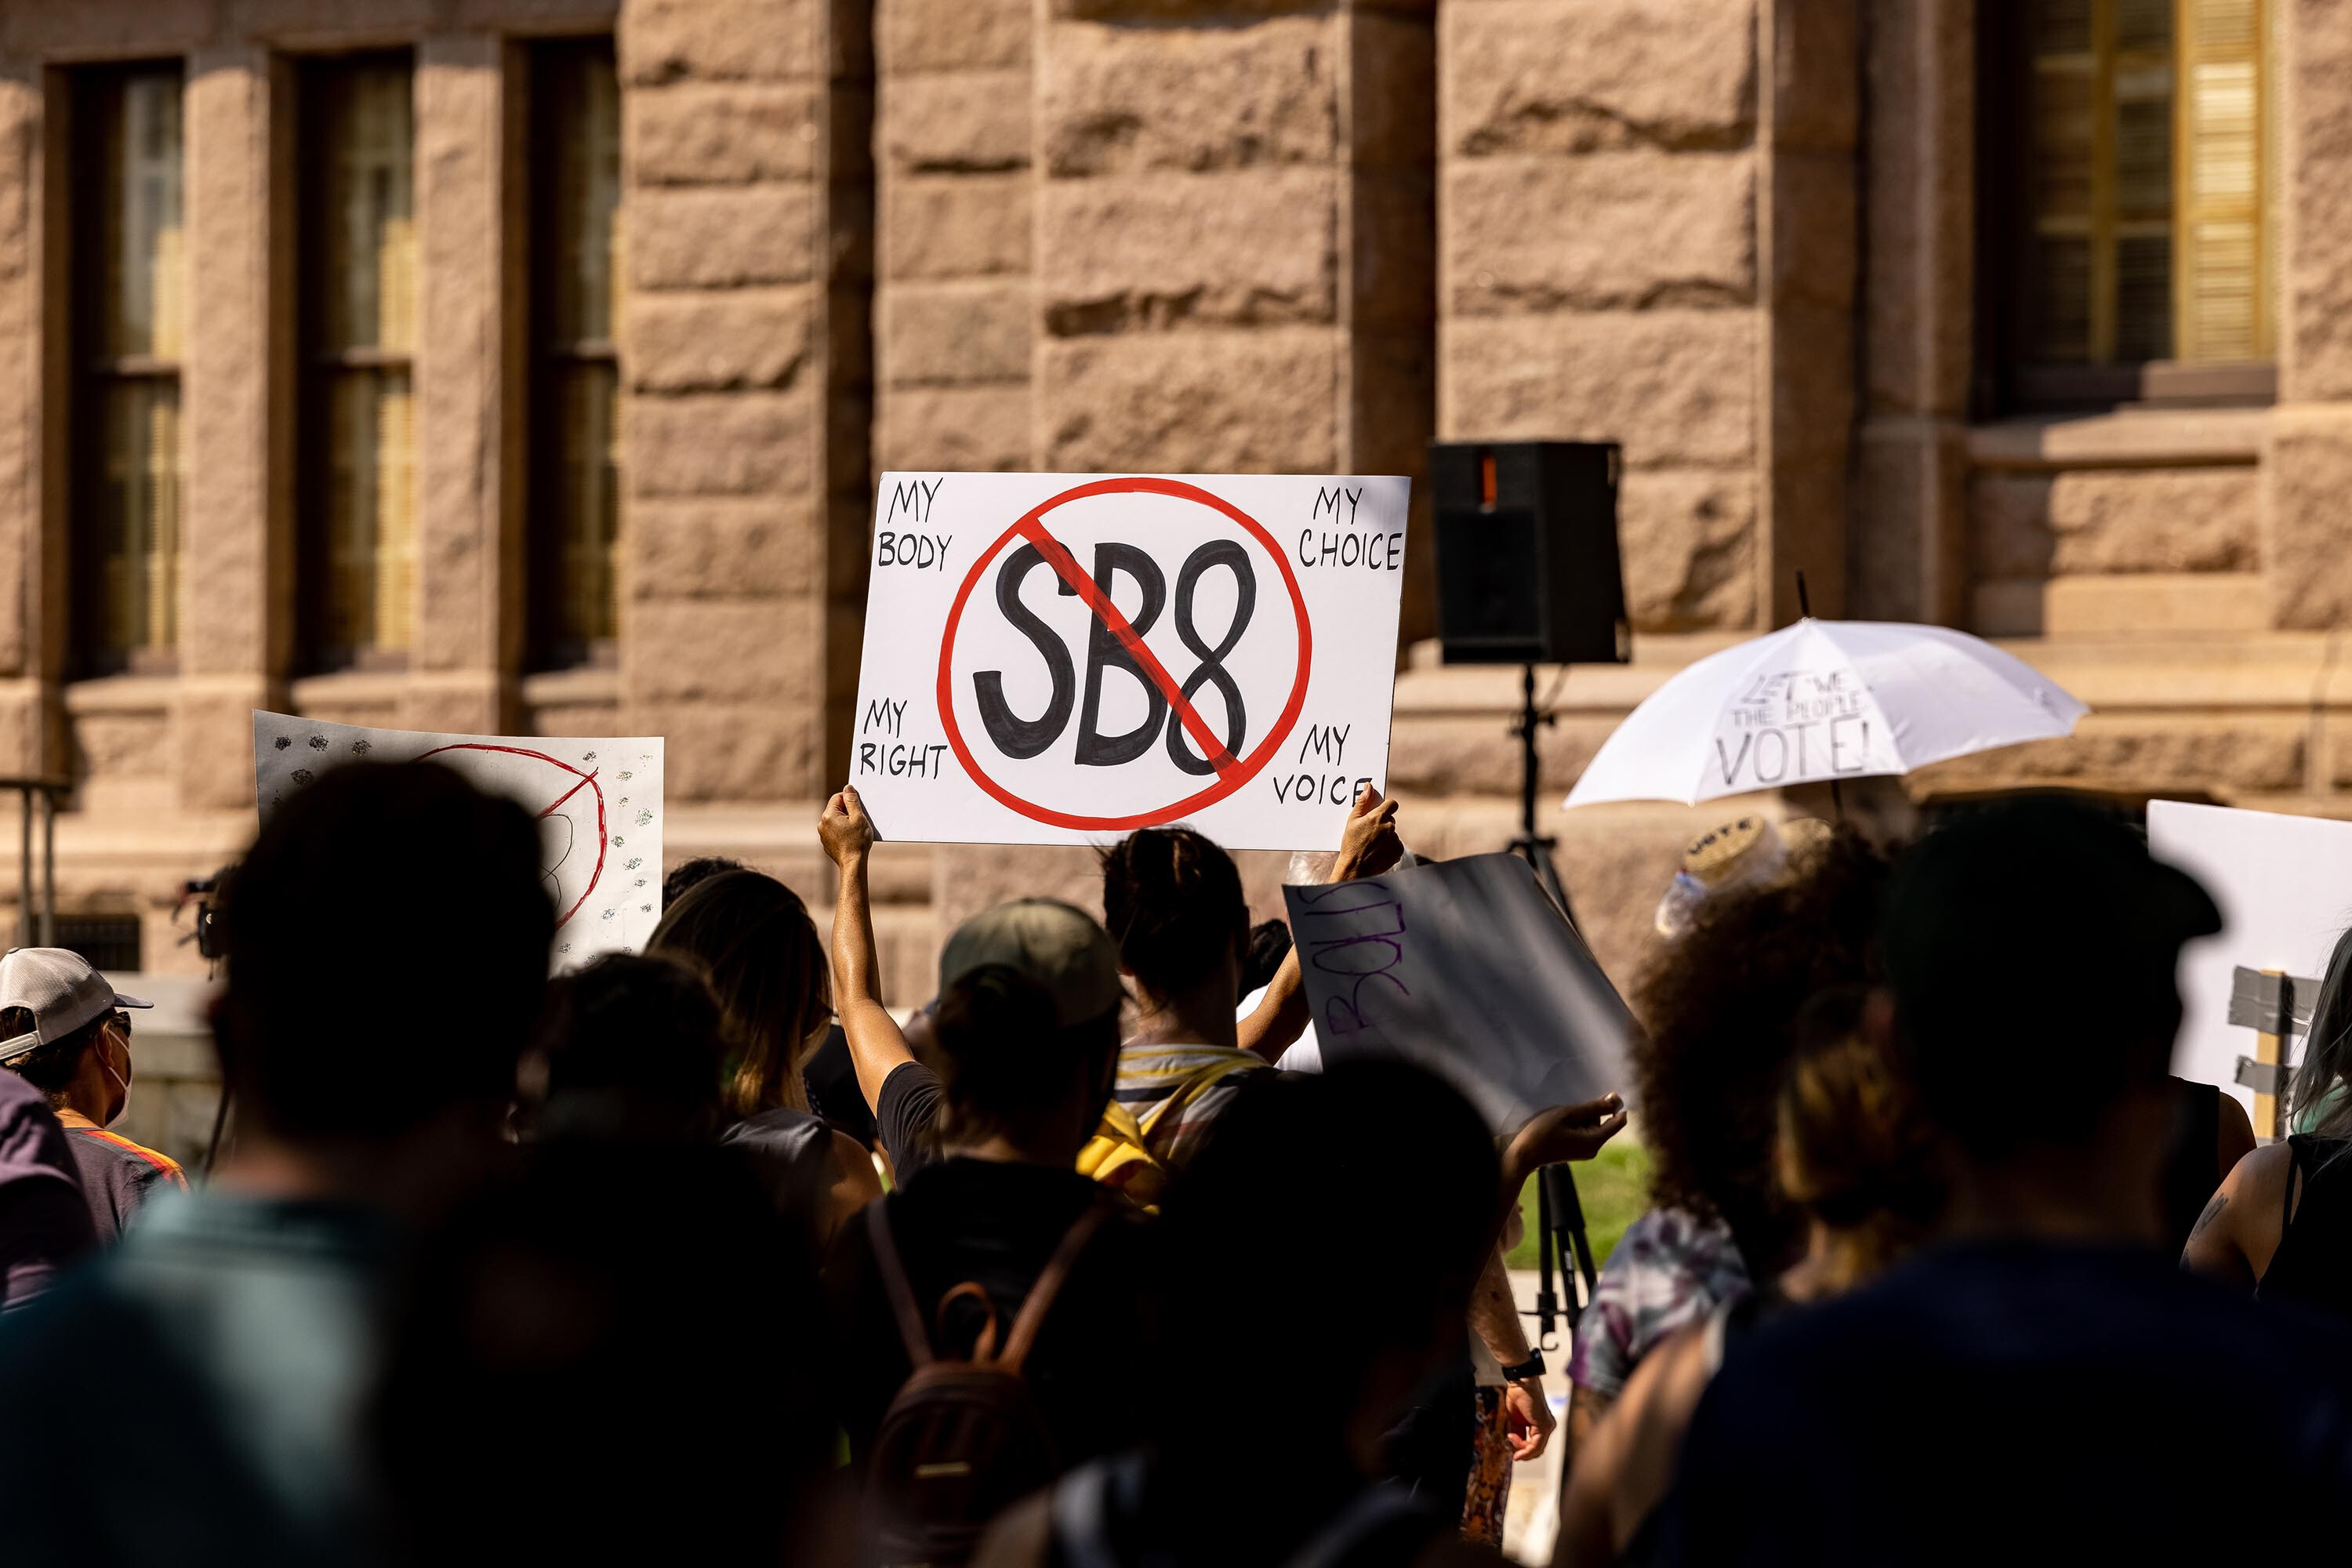 Texas urges appeals court to keep abortion ban in place as legal challenges play out